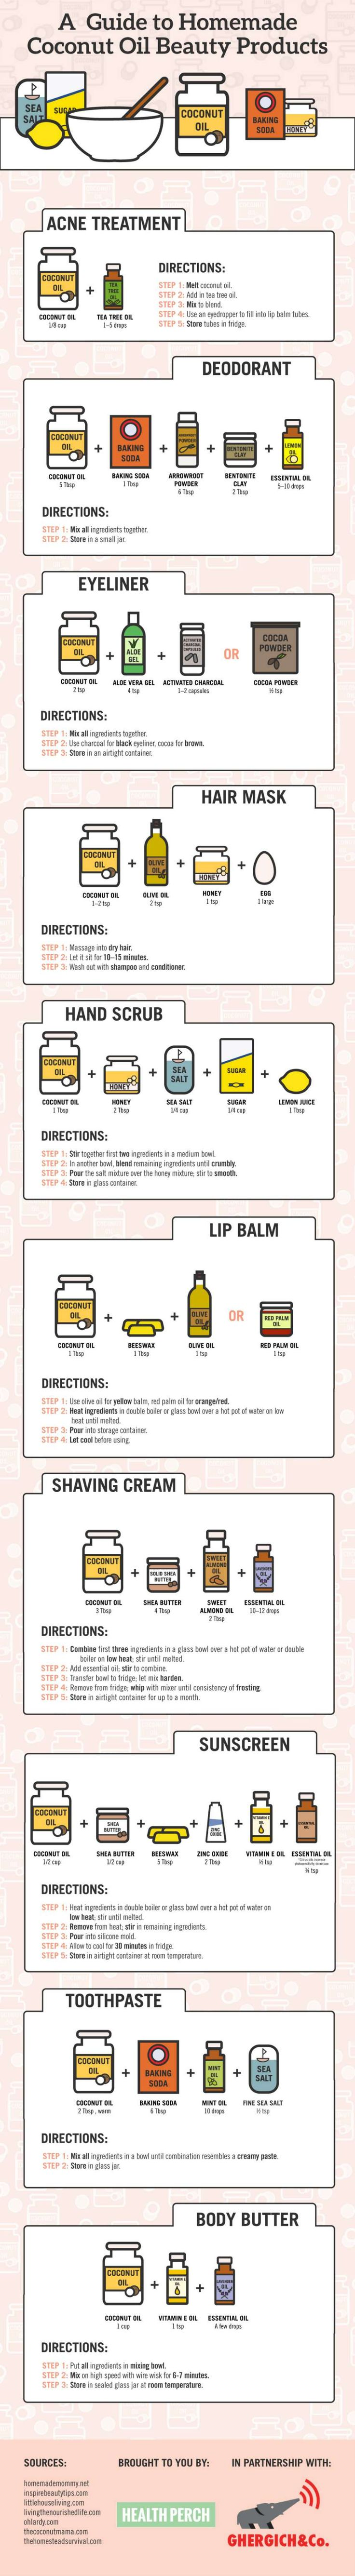 A handy guide to 11 natural homemade beauty products made with coconut oil